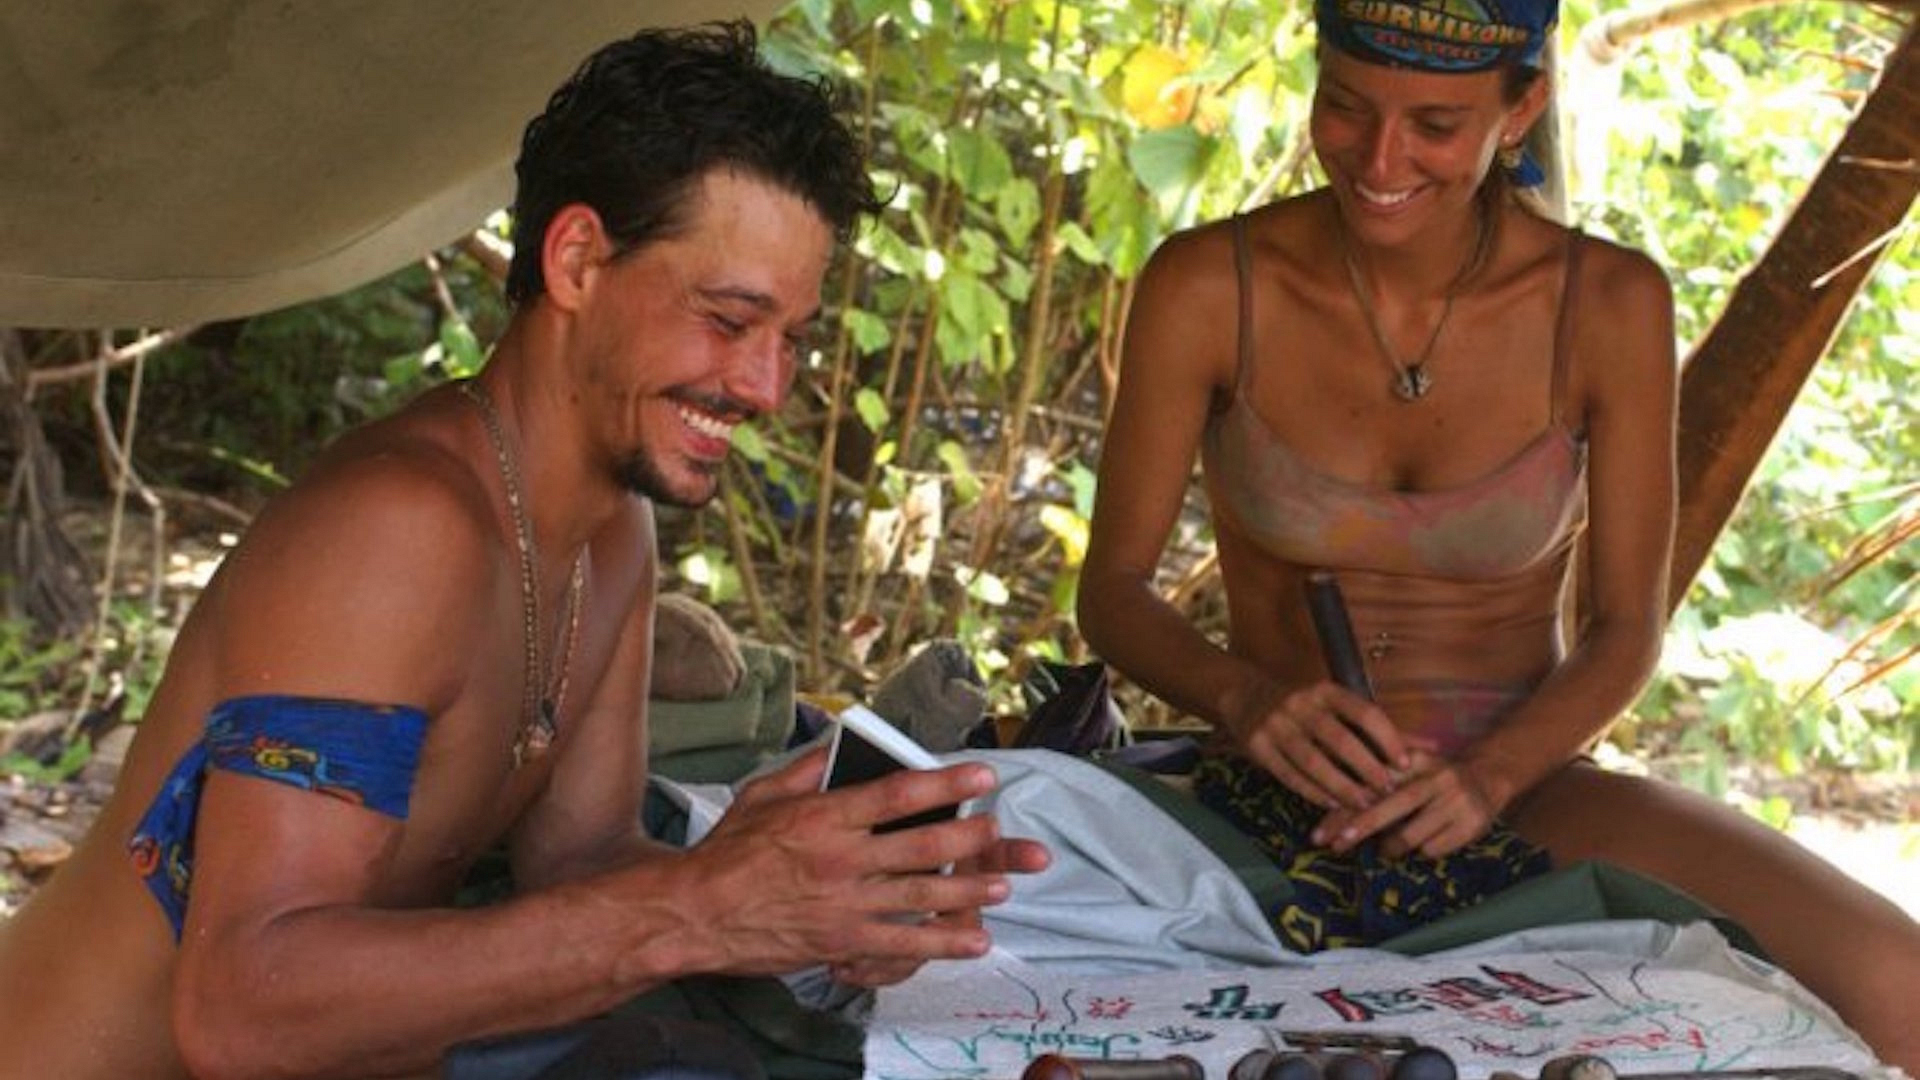 Rob Mariano backstabs Lex van den Berghe on Survivor: All-Stars